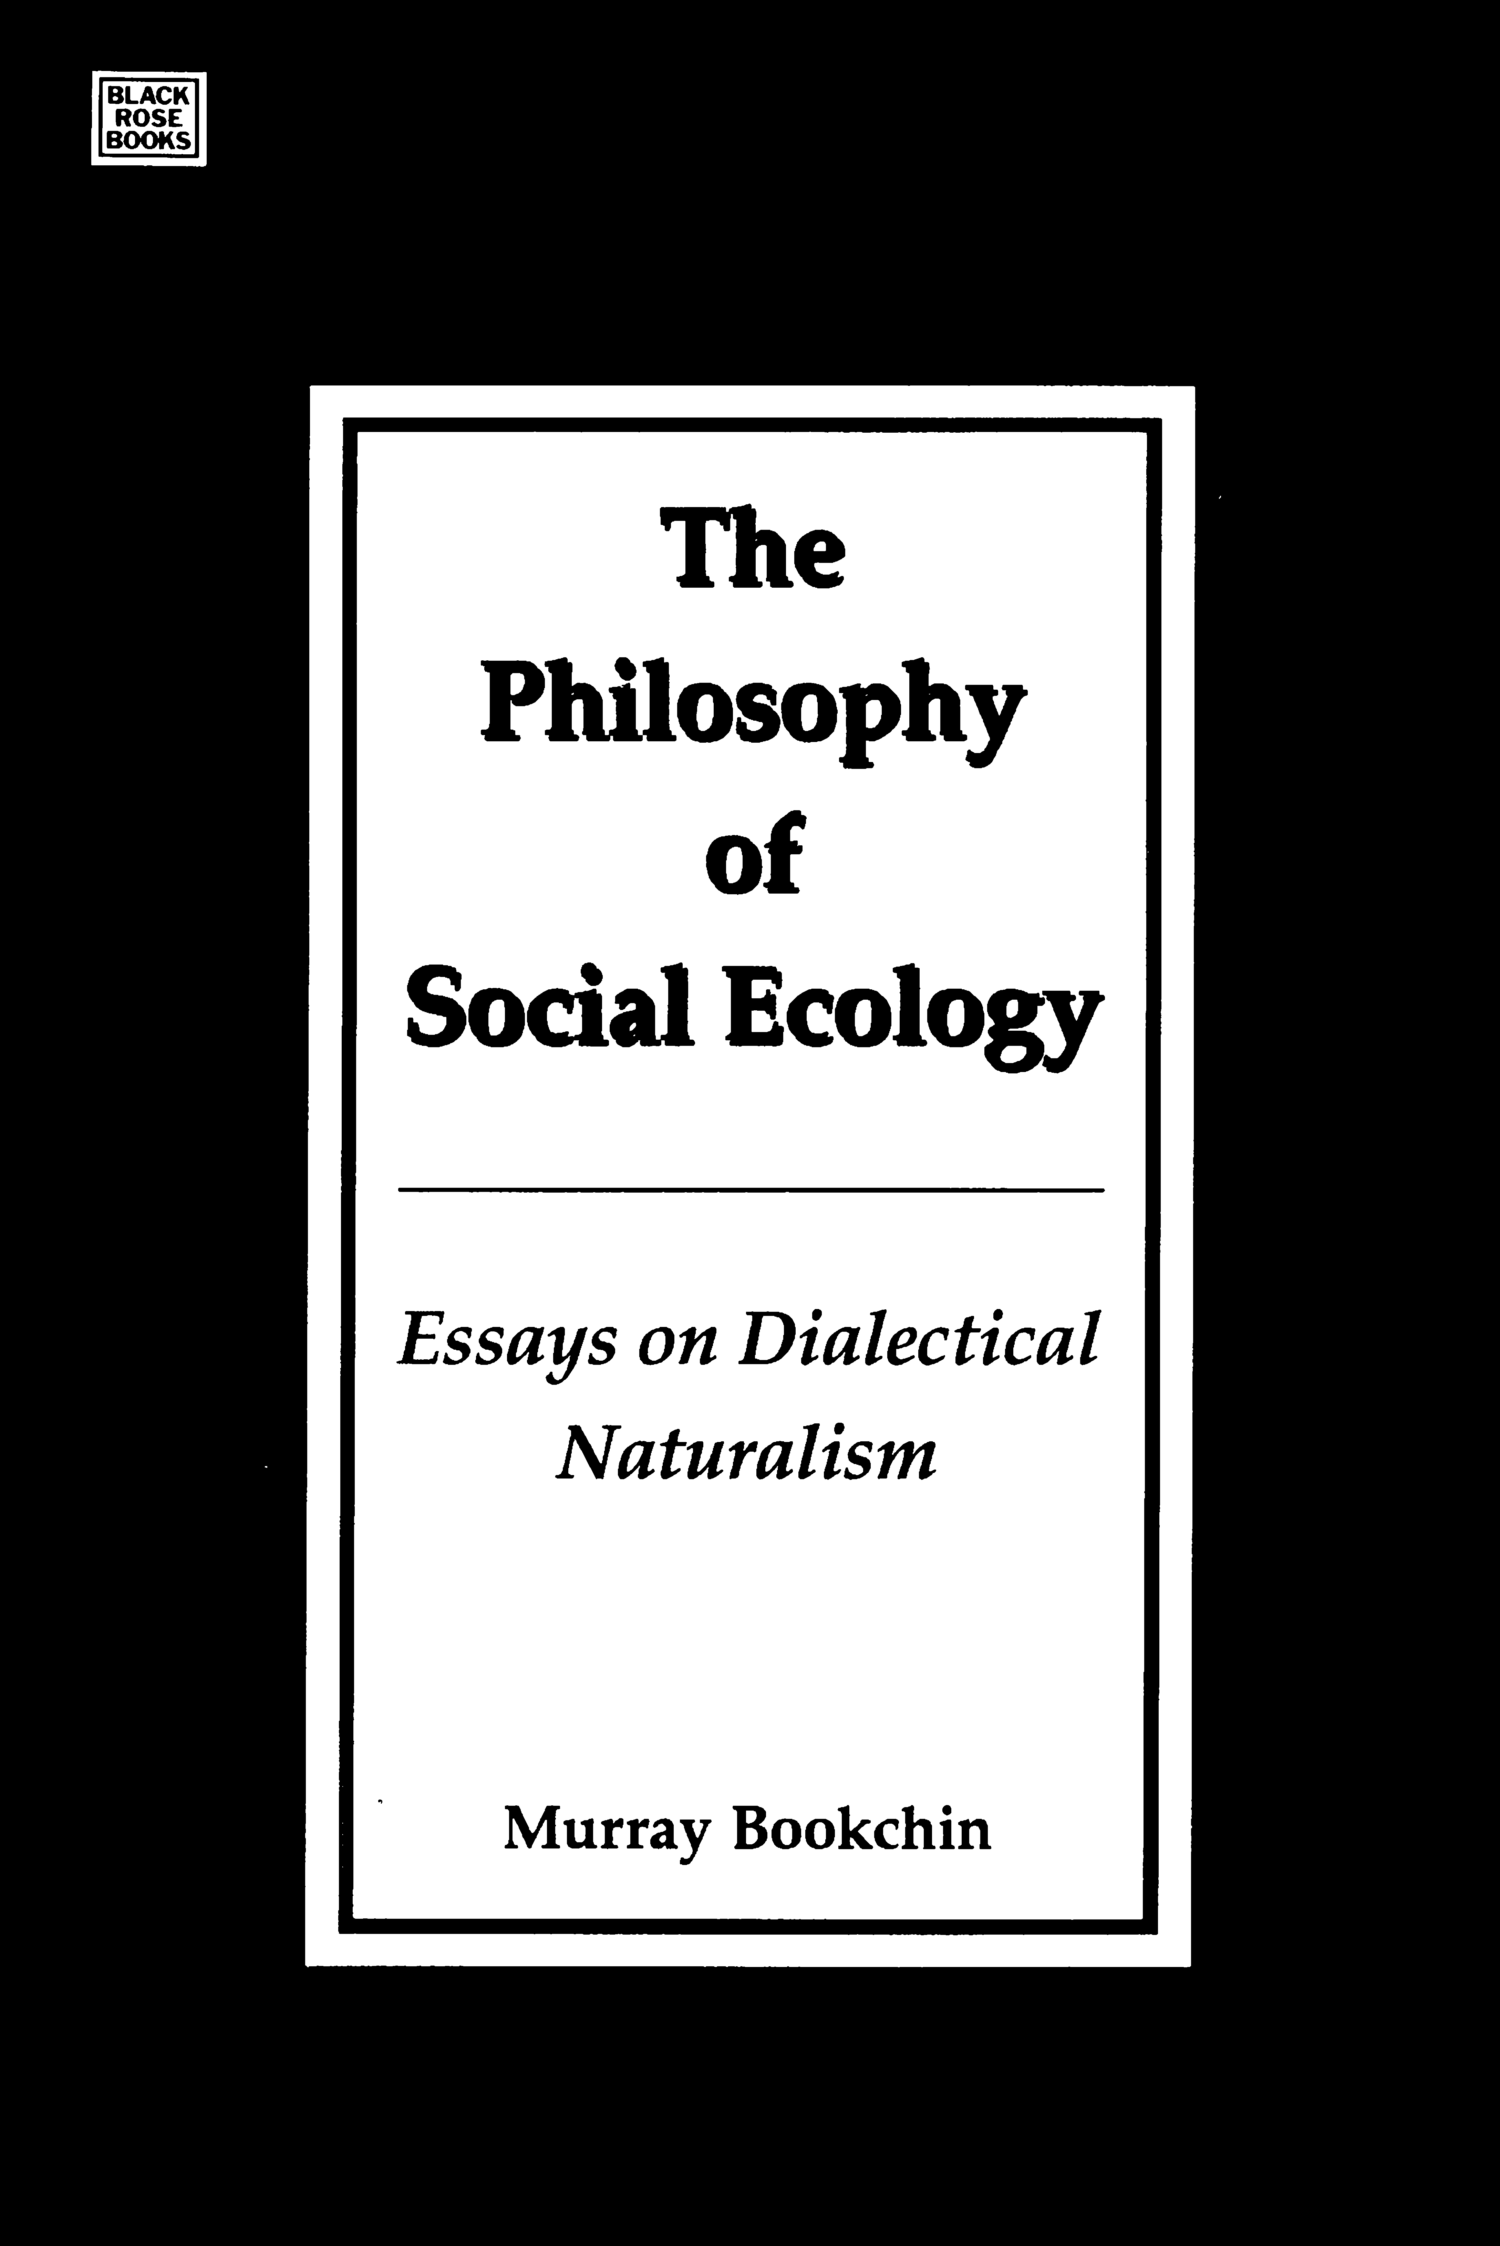 m-b-murray-bookchin-the-philosophy-of-social-ecolo-2.png